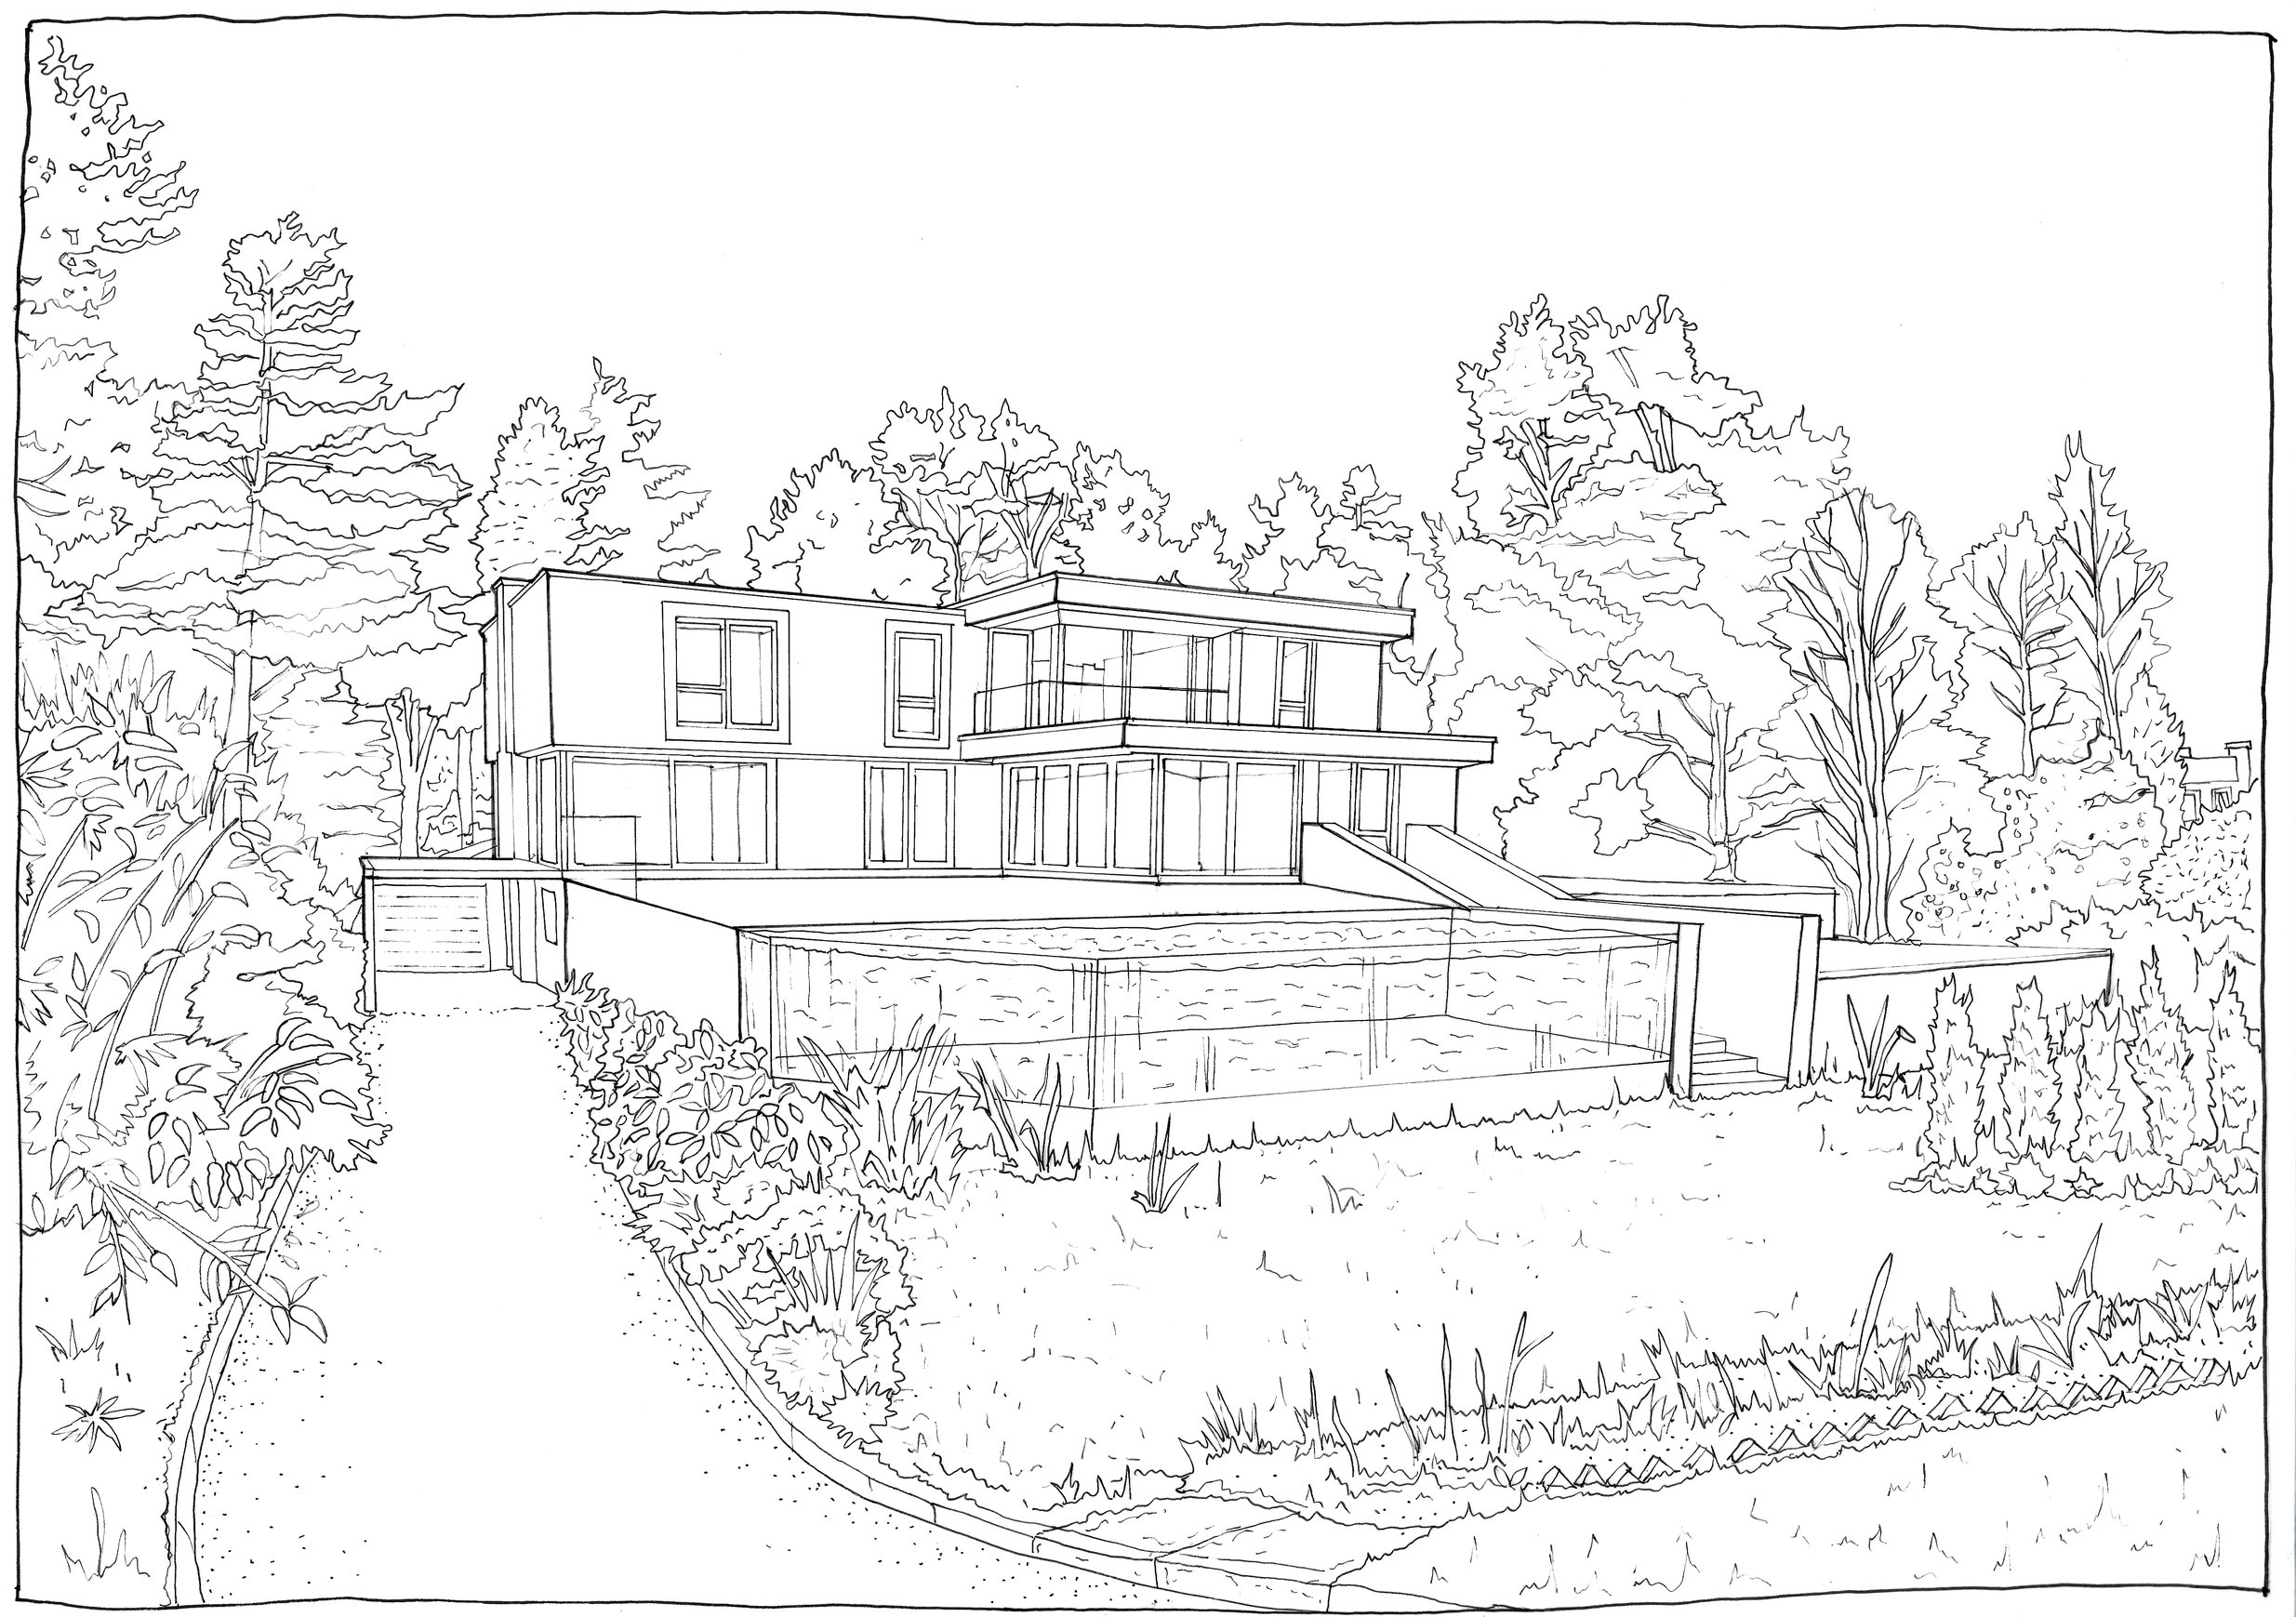 REAR ELEVATION - ORIGINAL PEN DRAWING